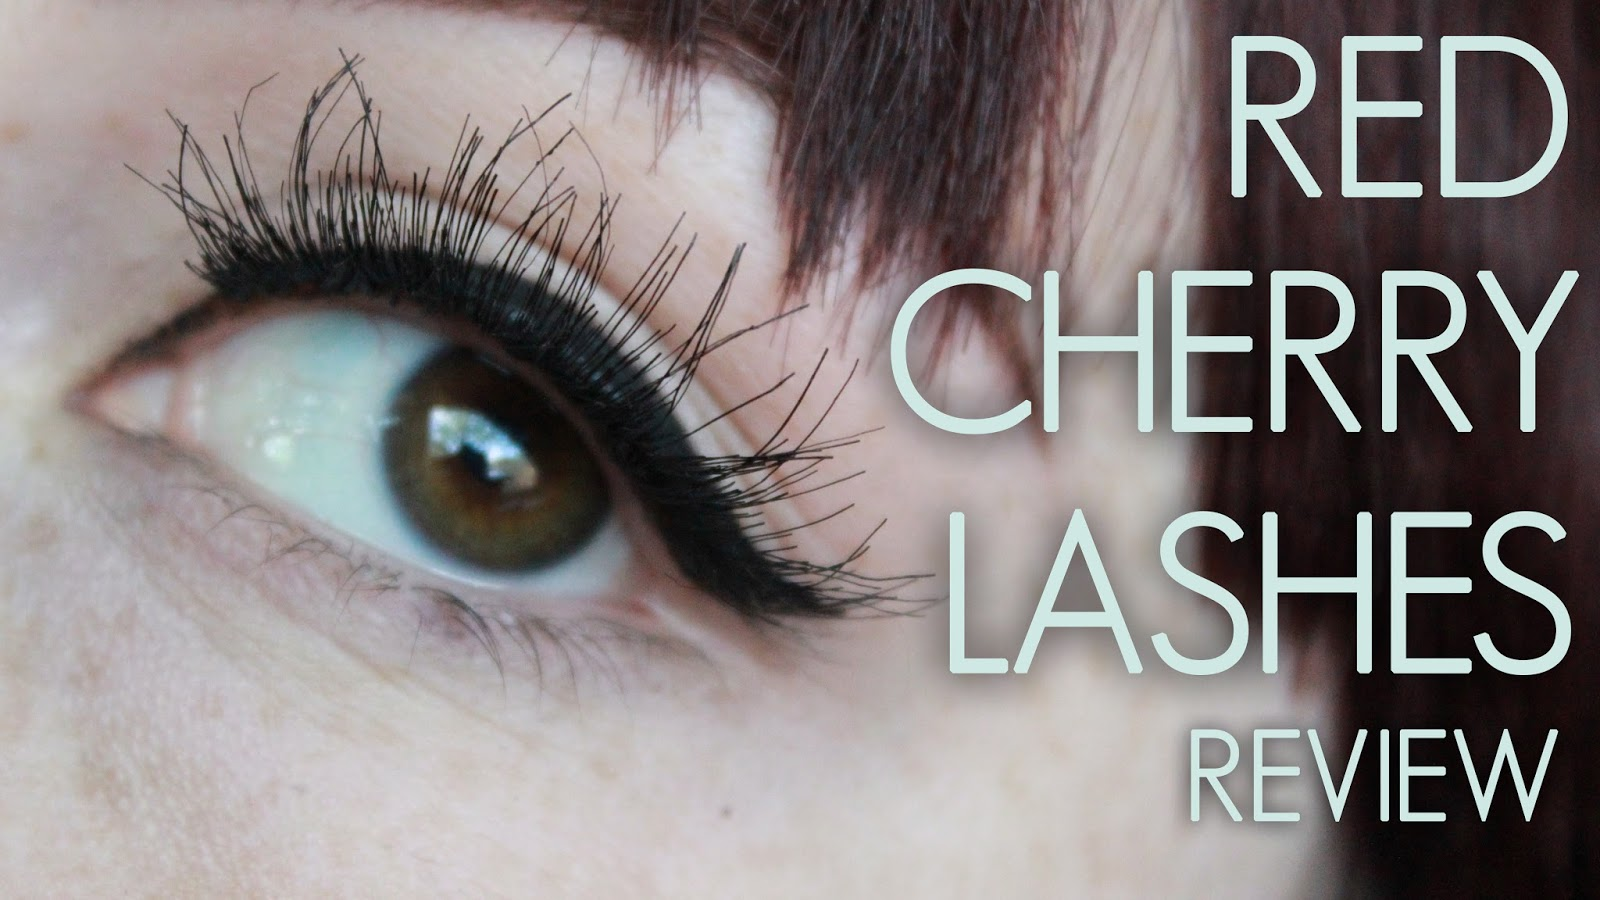 Coffeepls Red Cherry Lashes Haulreview